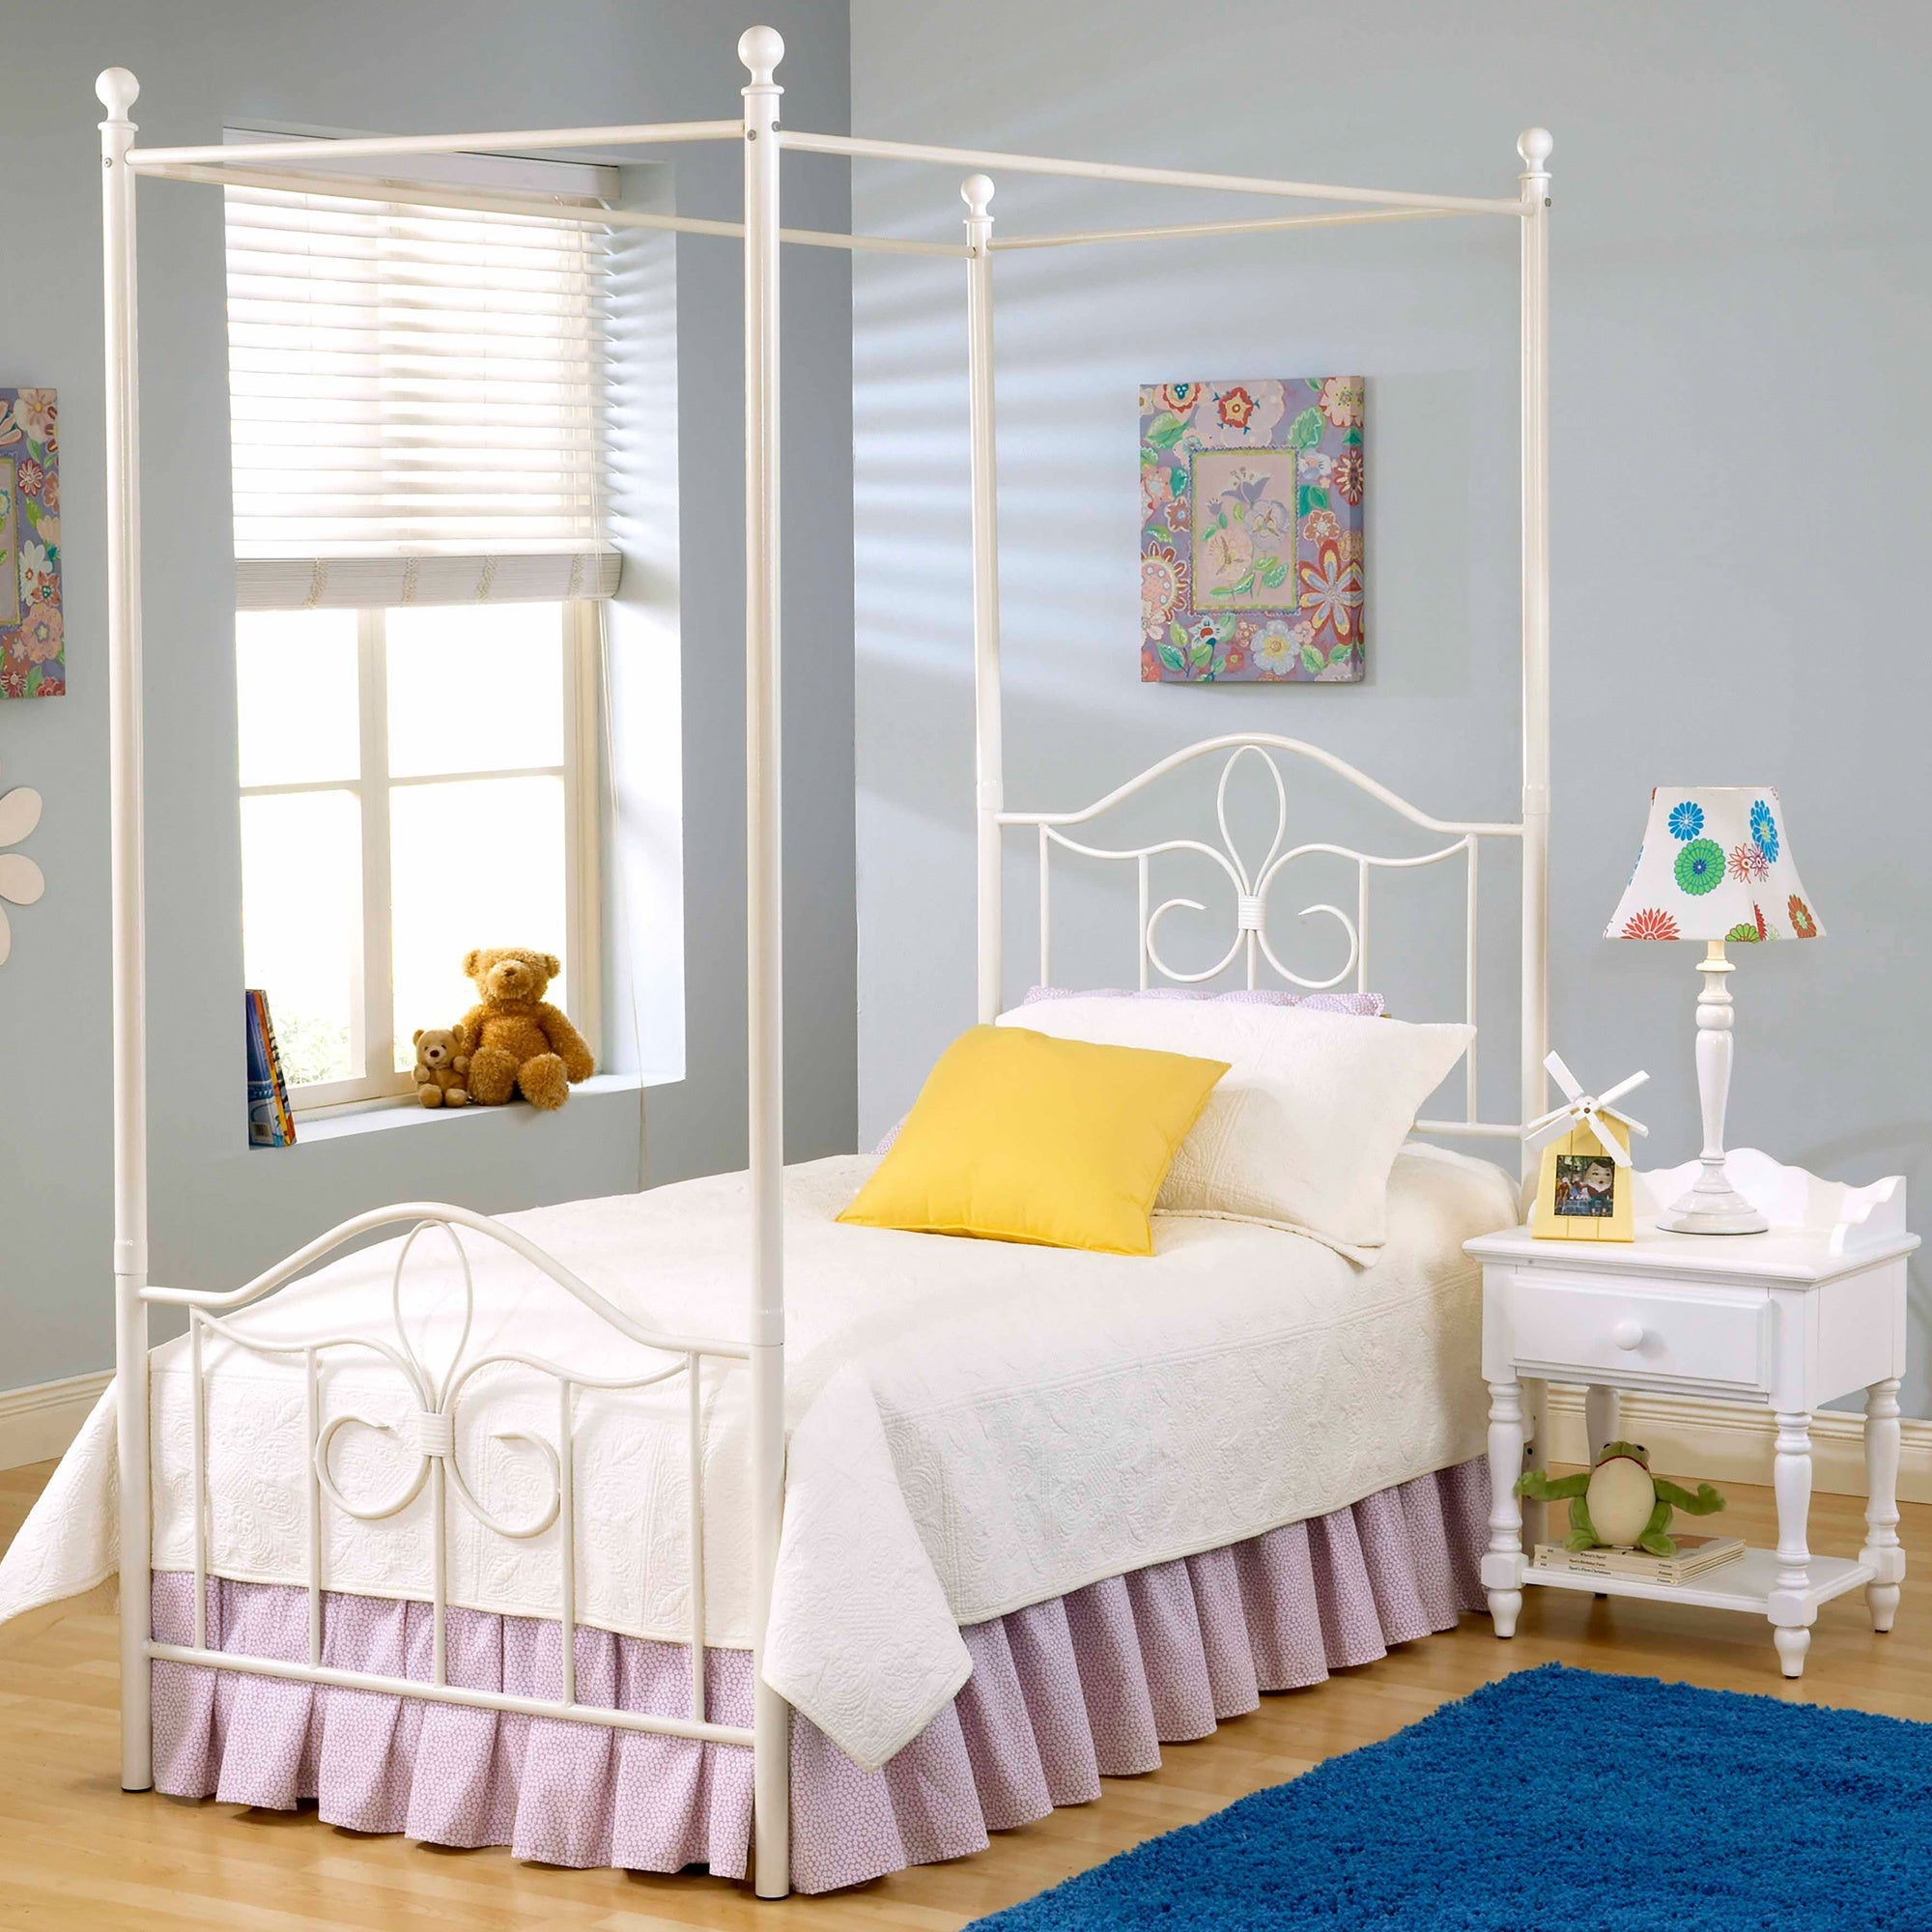 Hillsdale Westfield Canopy Bed Set (Twin), White